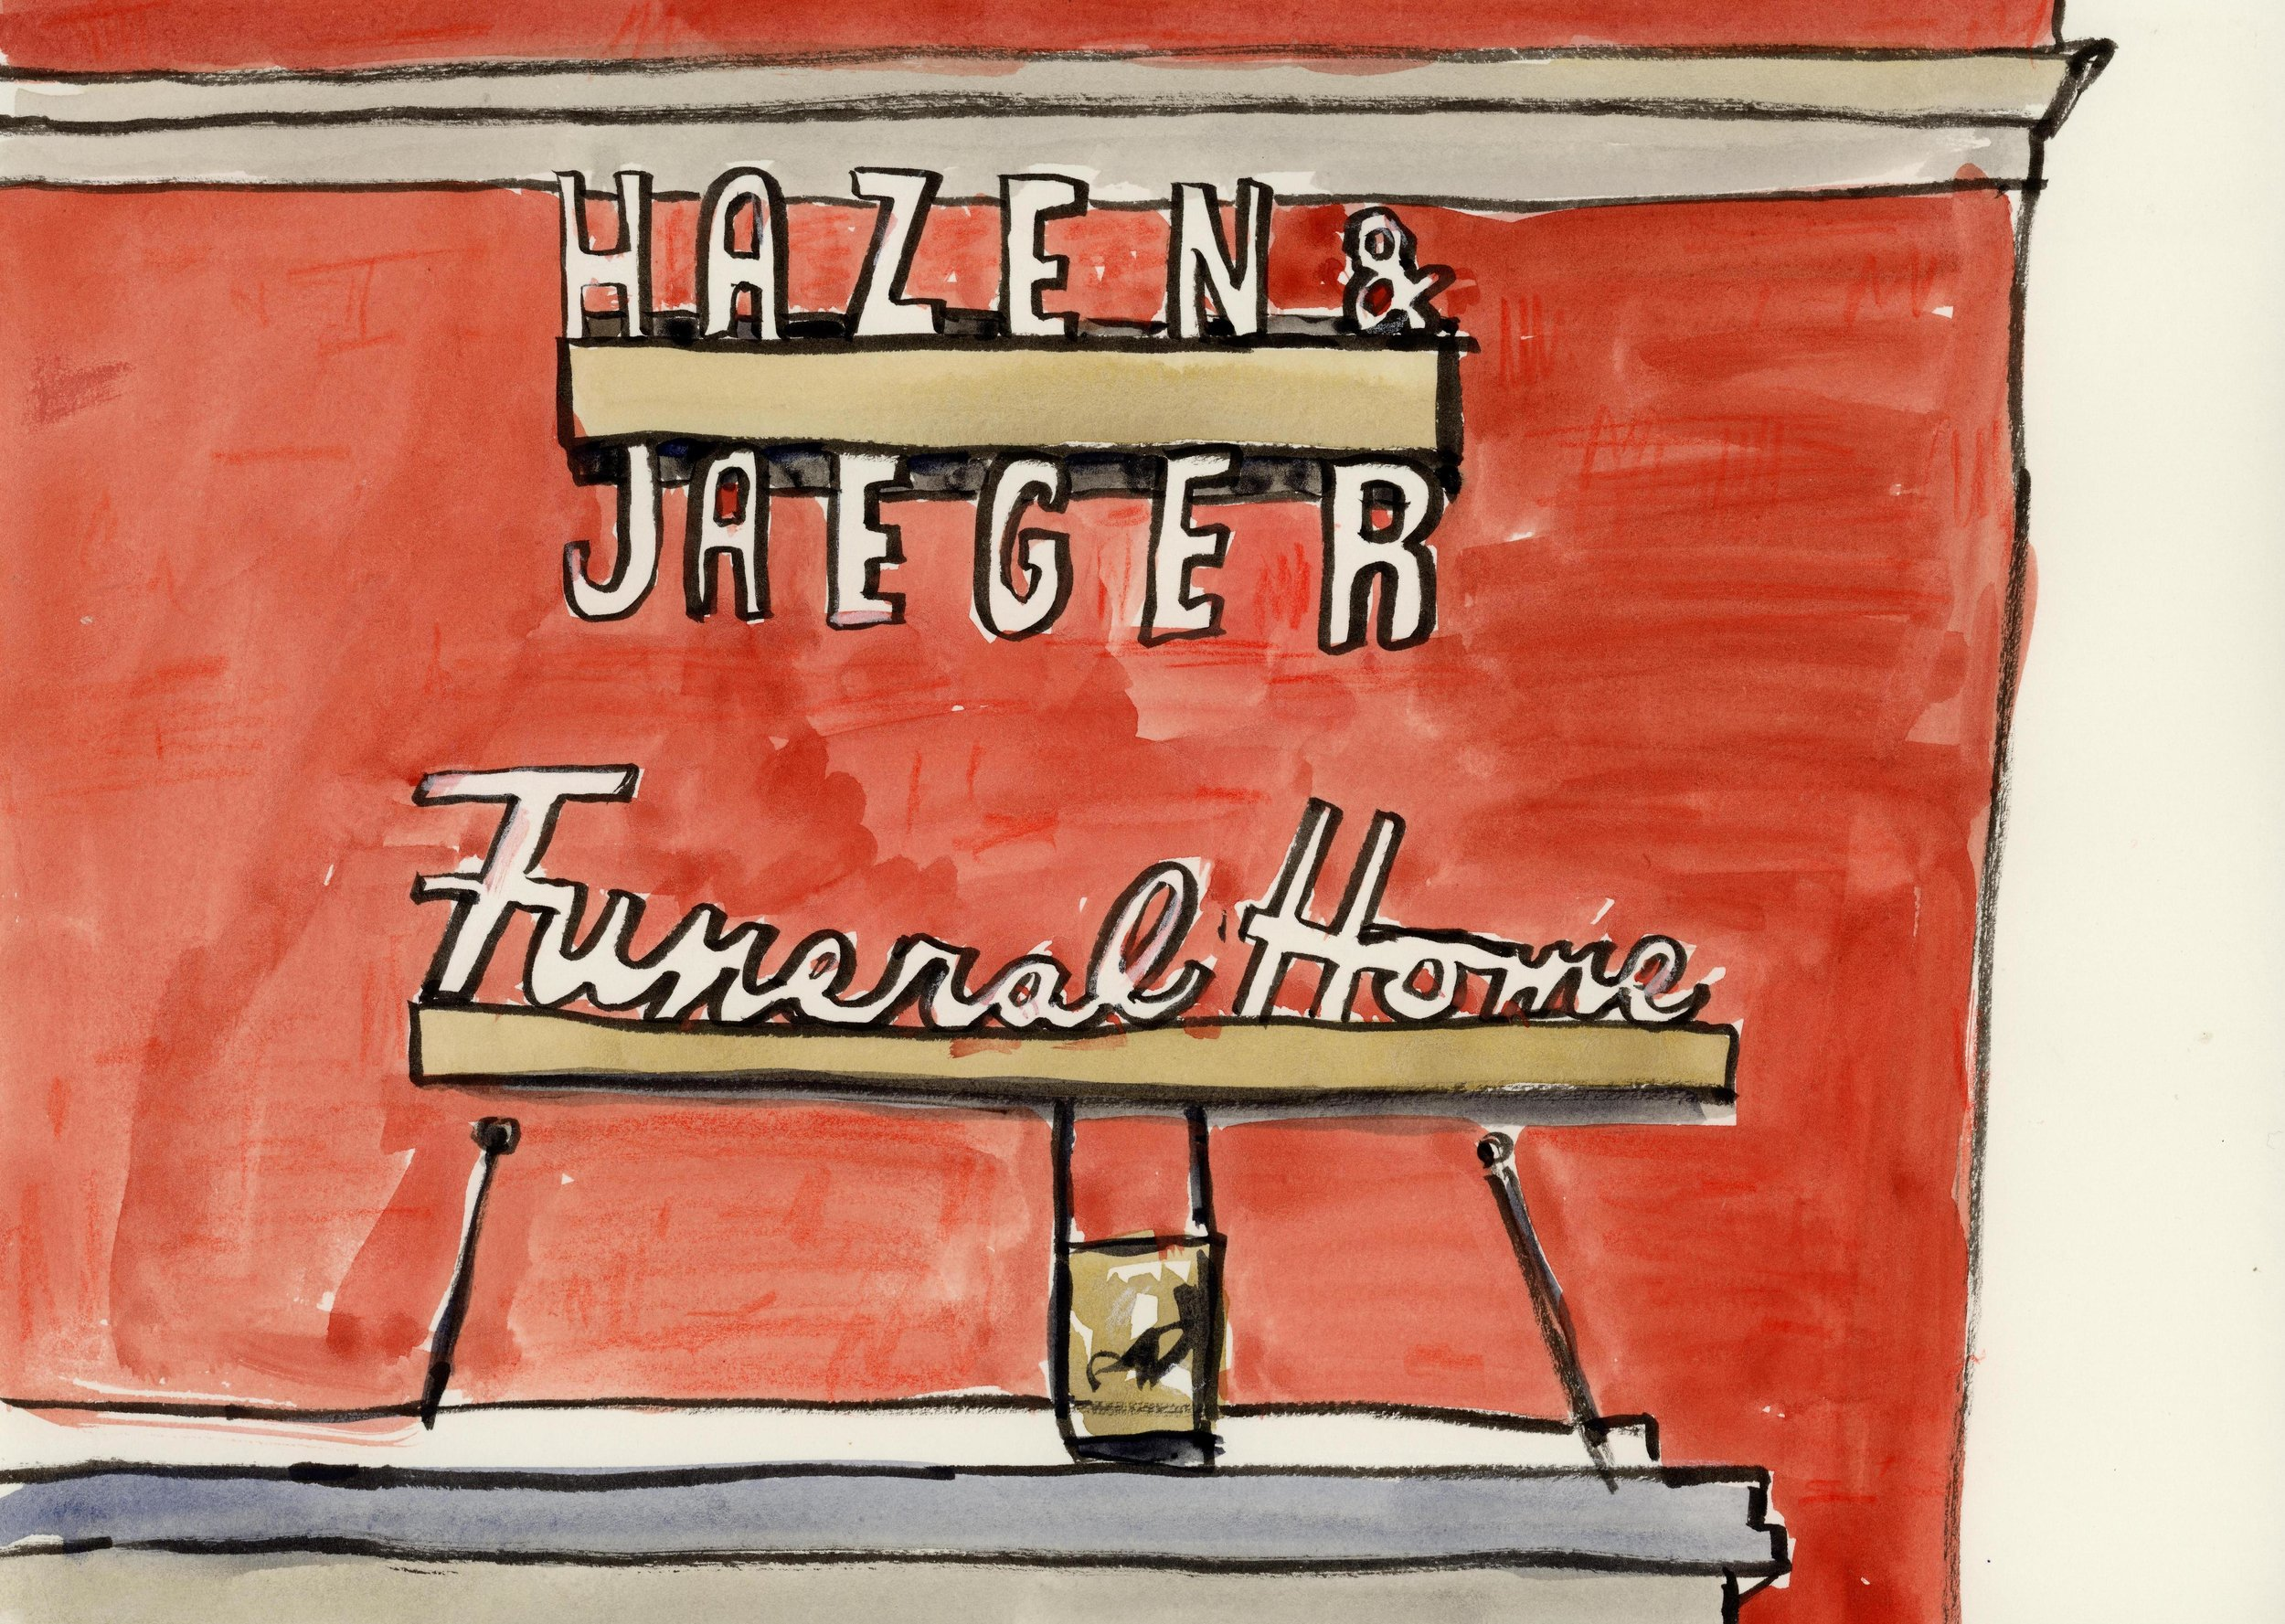 Hazen Jaeger is a respected funeral service, but what caught my eye was the fabulous signage lettering on the side of their building and the incredible molding and architectural embellishments on the frontage.